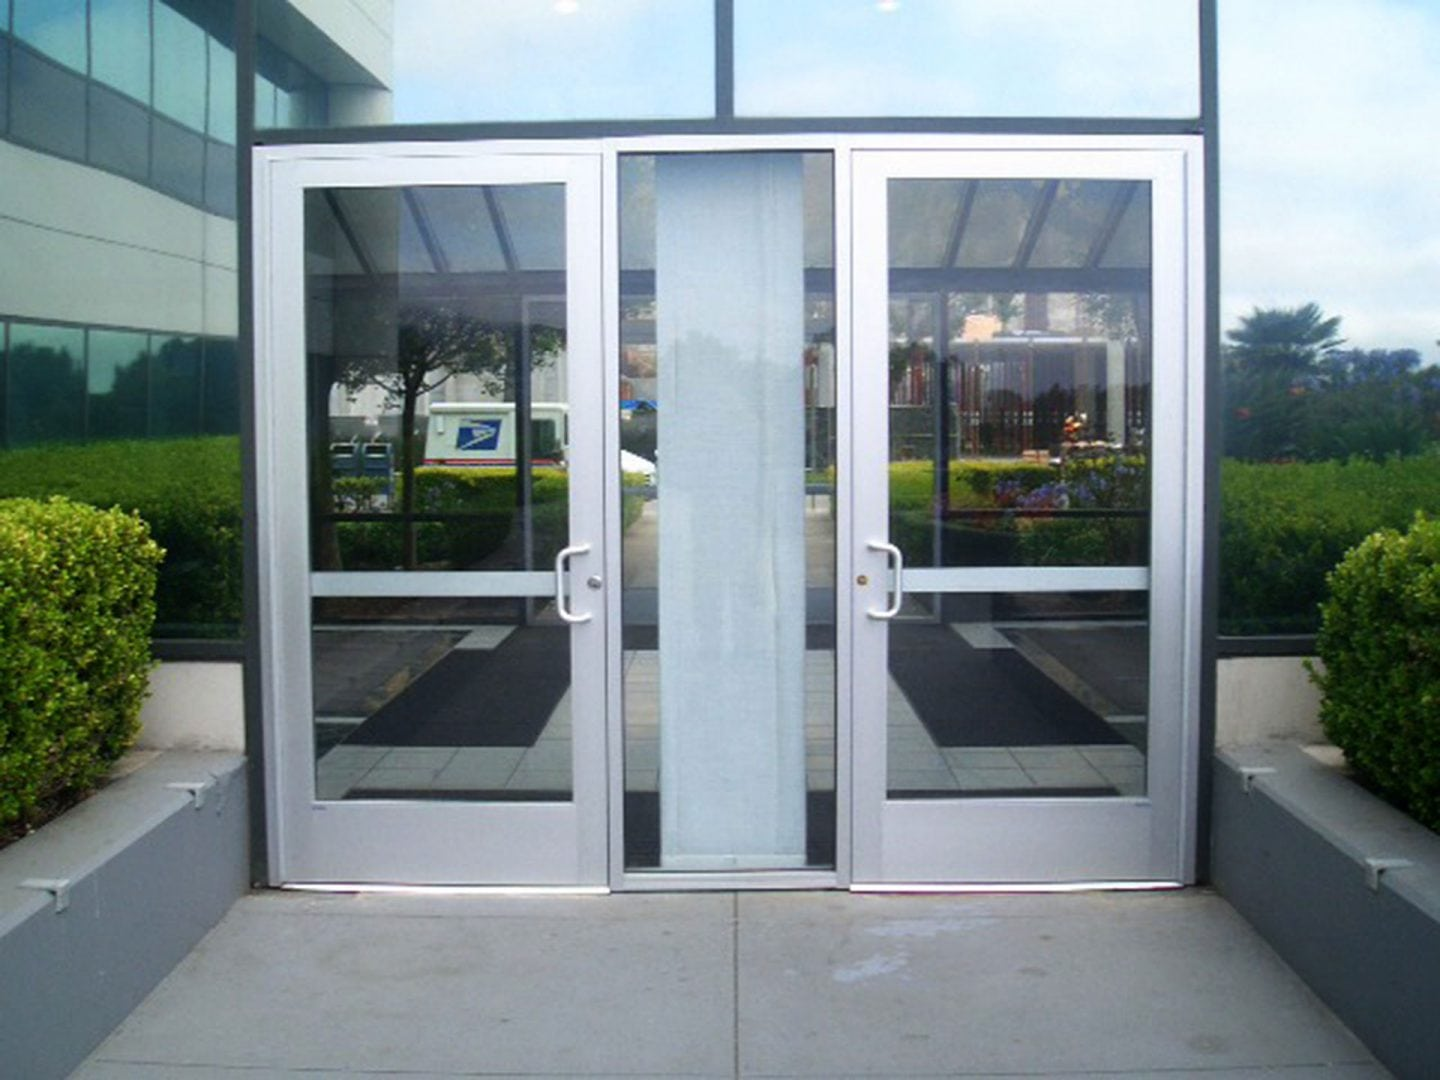 Residential Garage Doors, garage doors, Commercial Garage Doors, overhead doors, Dock Equipment, warehouse, srolling steel door, sectional door, high speed roll up doors, dock bumpers, dock seals, dock levelers